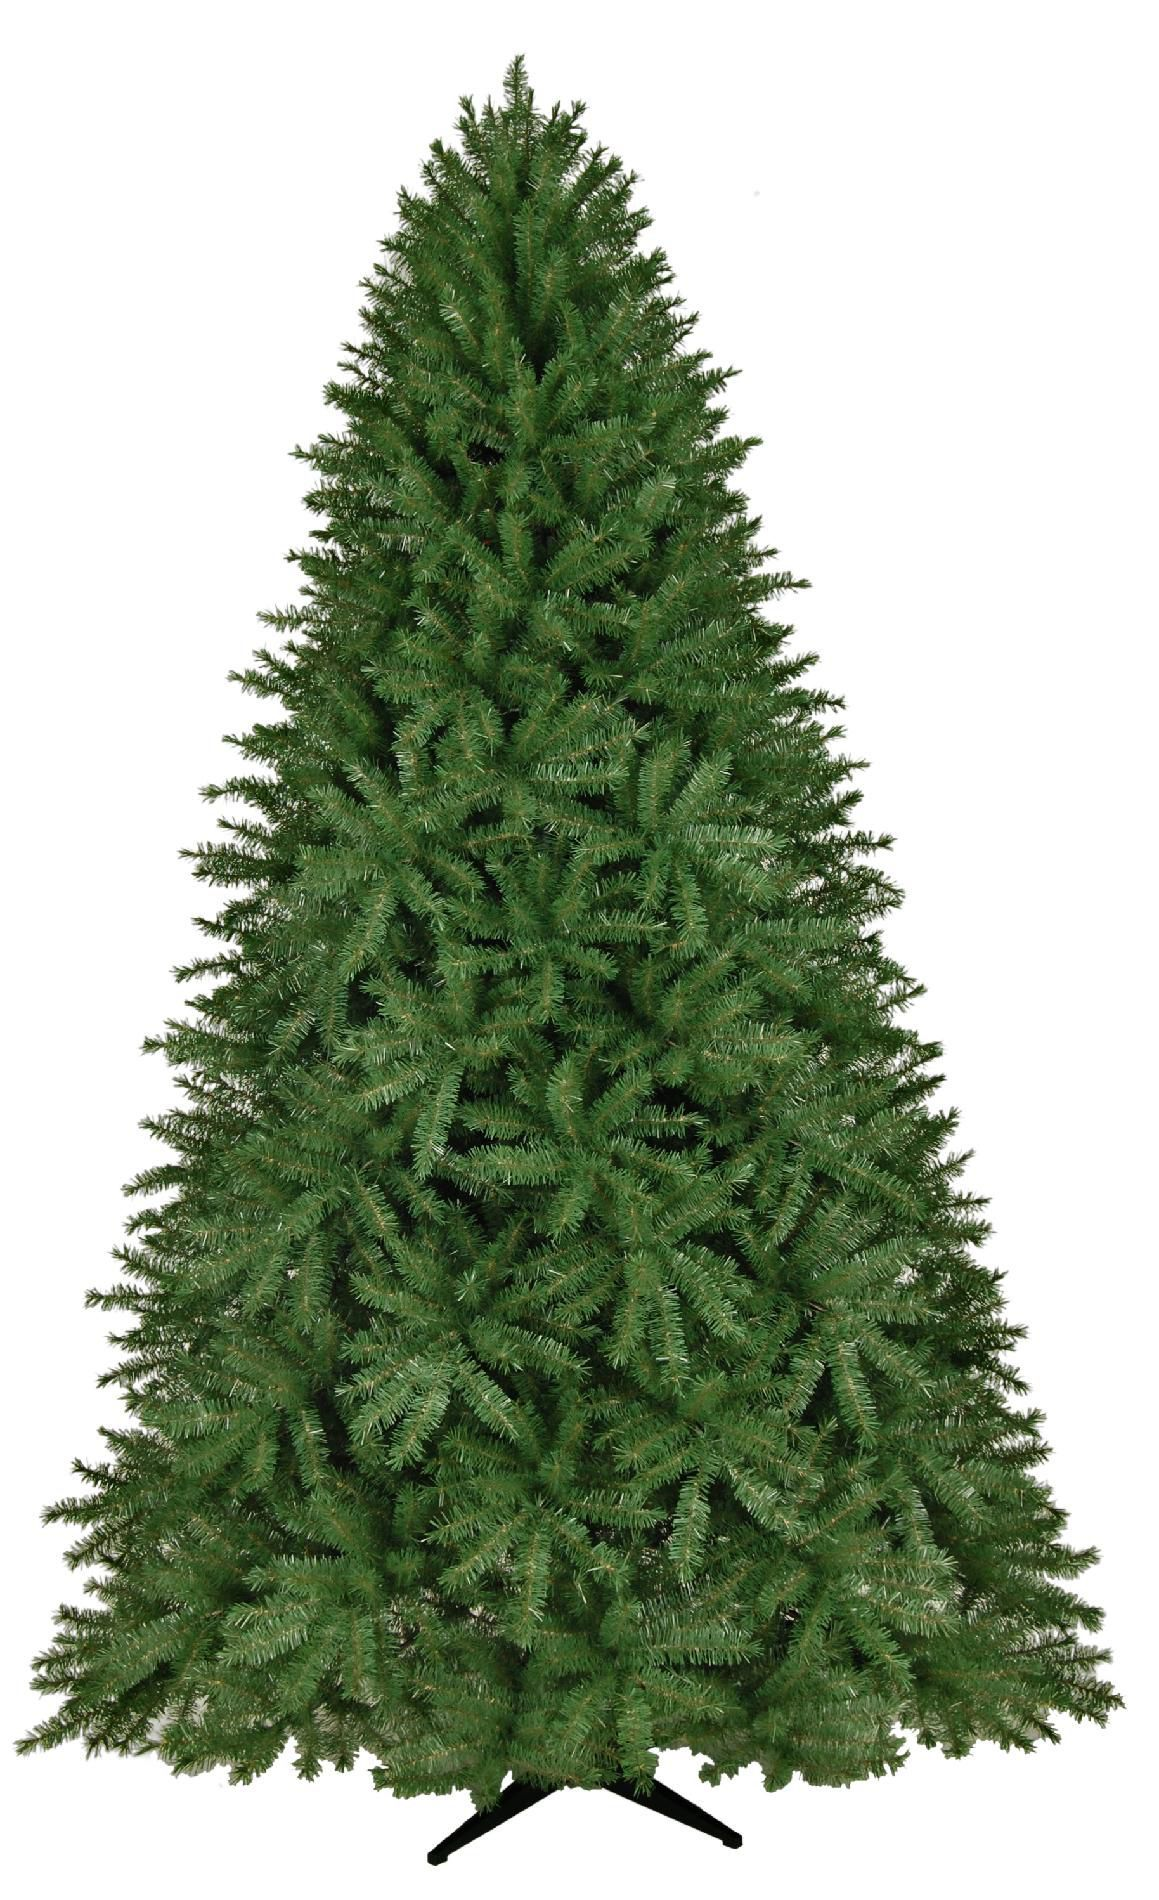 9ft birchwood pine christmas tree kmart 15524 will be 50 off on - Christmas Tree Black Friday